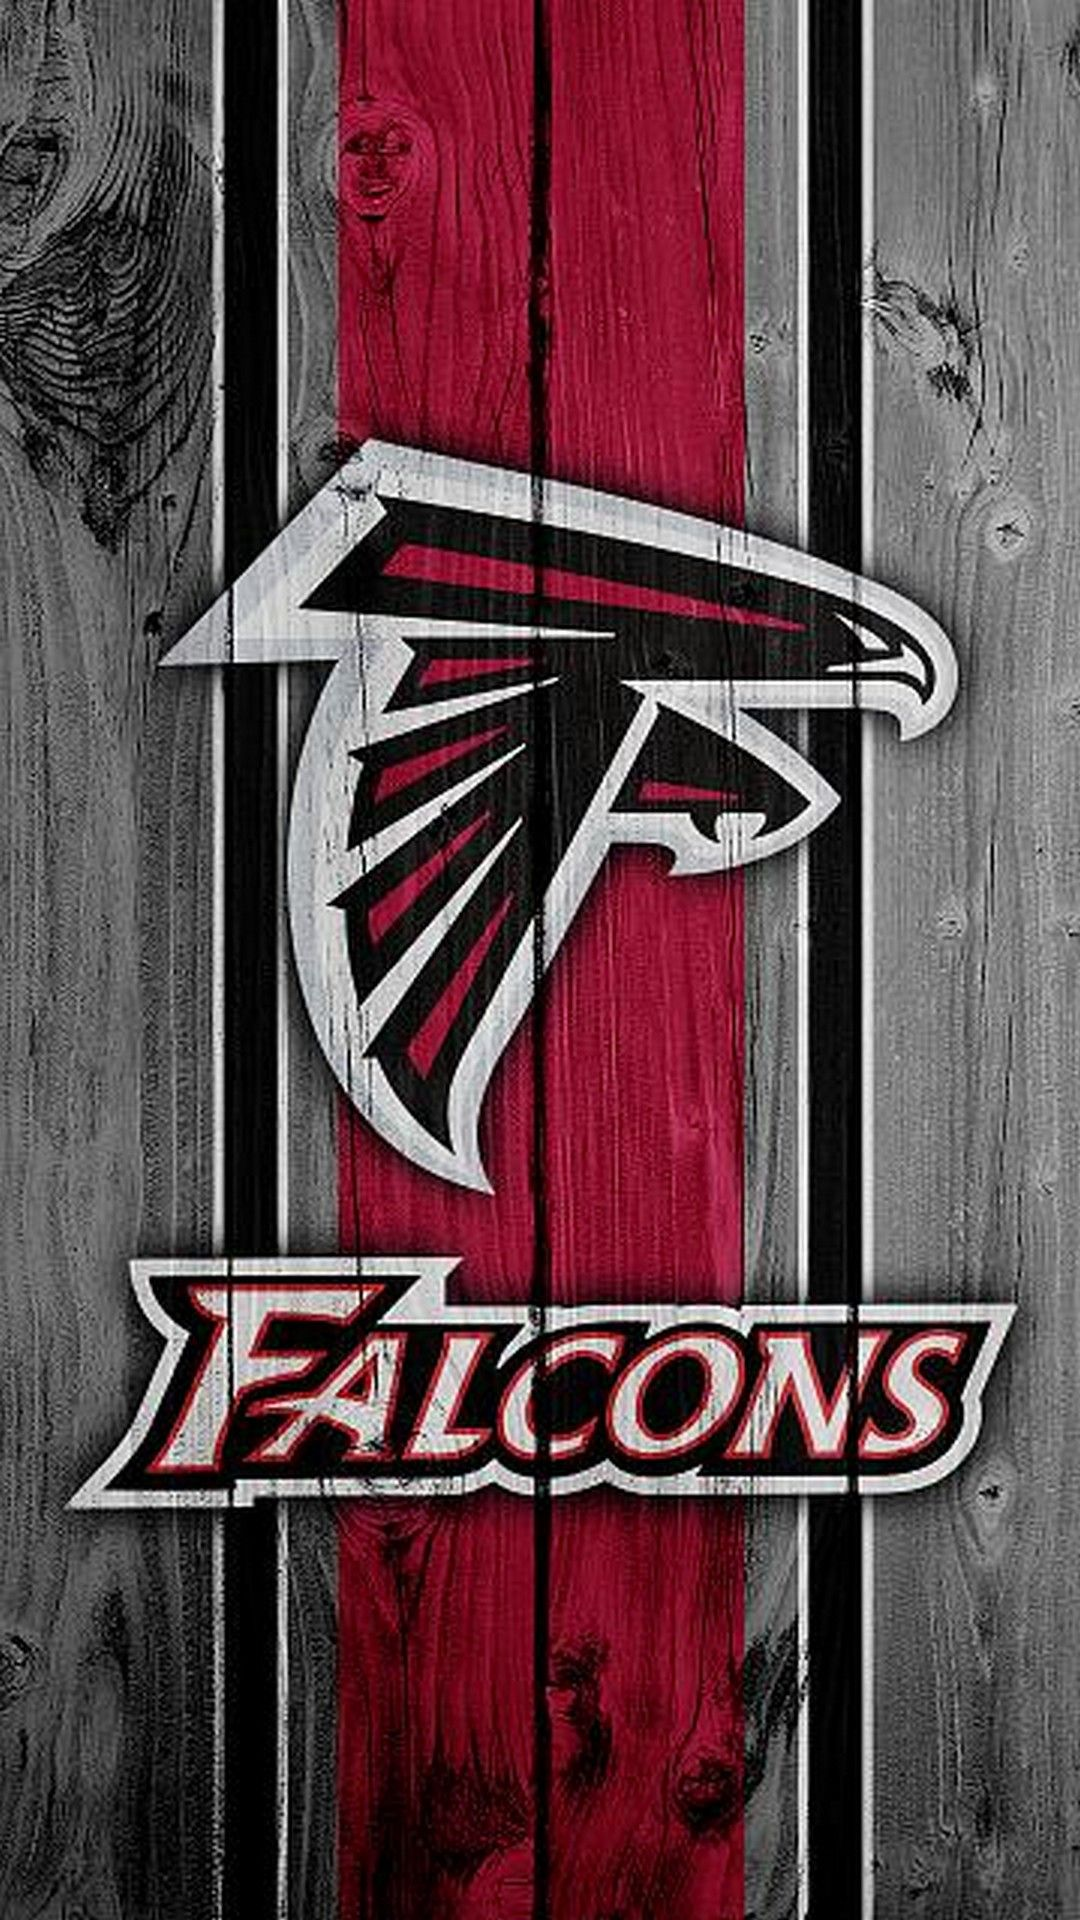 Atlanta Falcons Iphone Wallpaper Hd Best Nfl Wallpaper Atlanta Falcons Wallpaper Atlanta Falcons Meme Atlanta Falcons